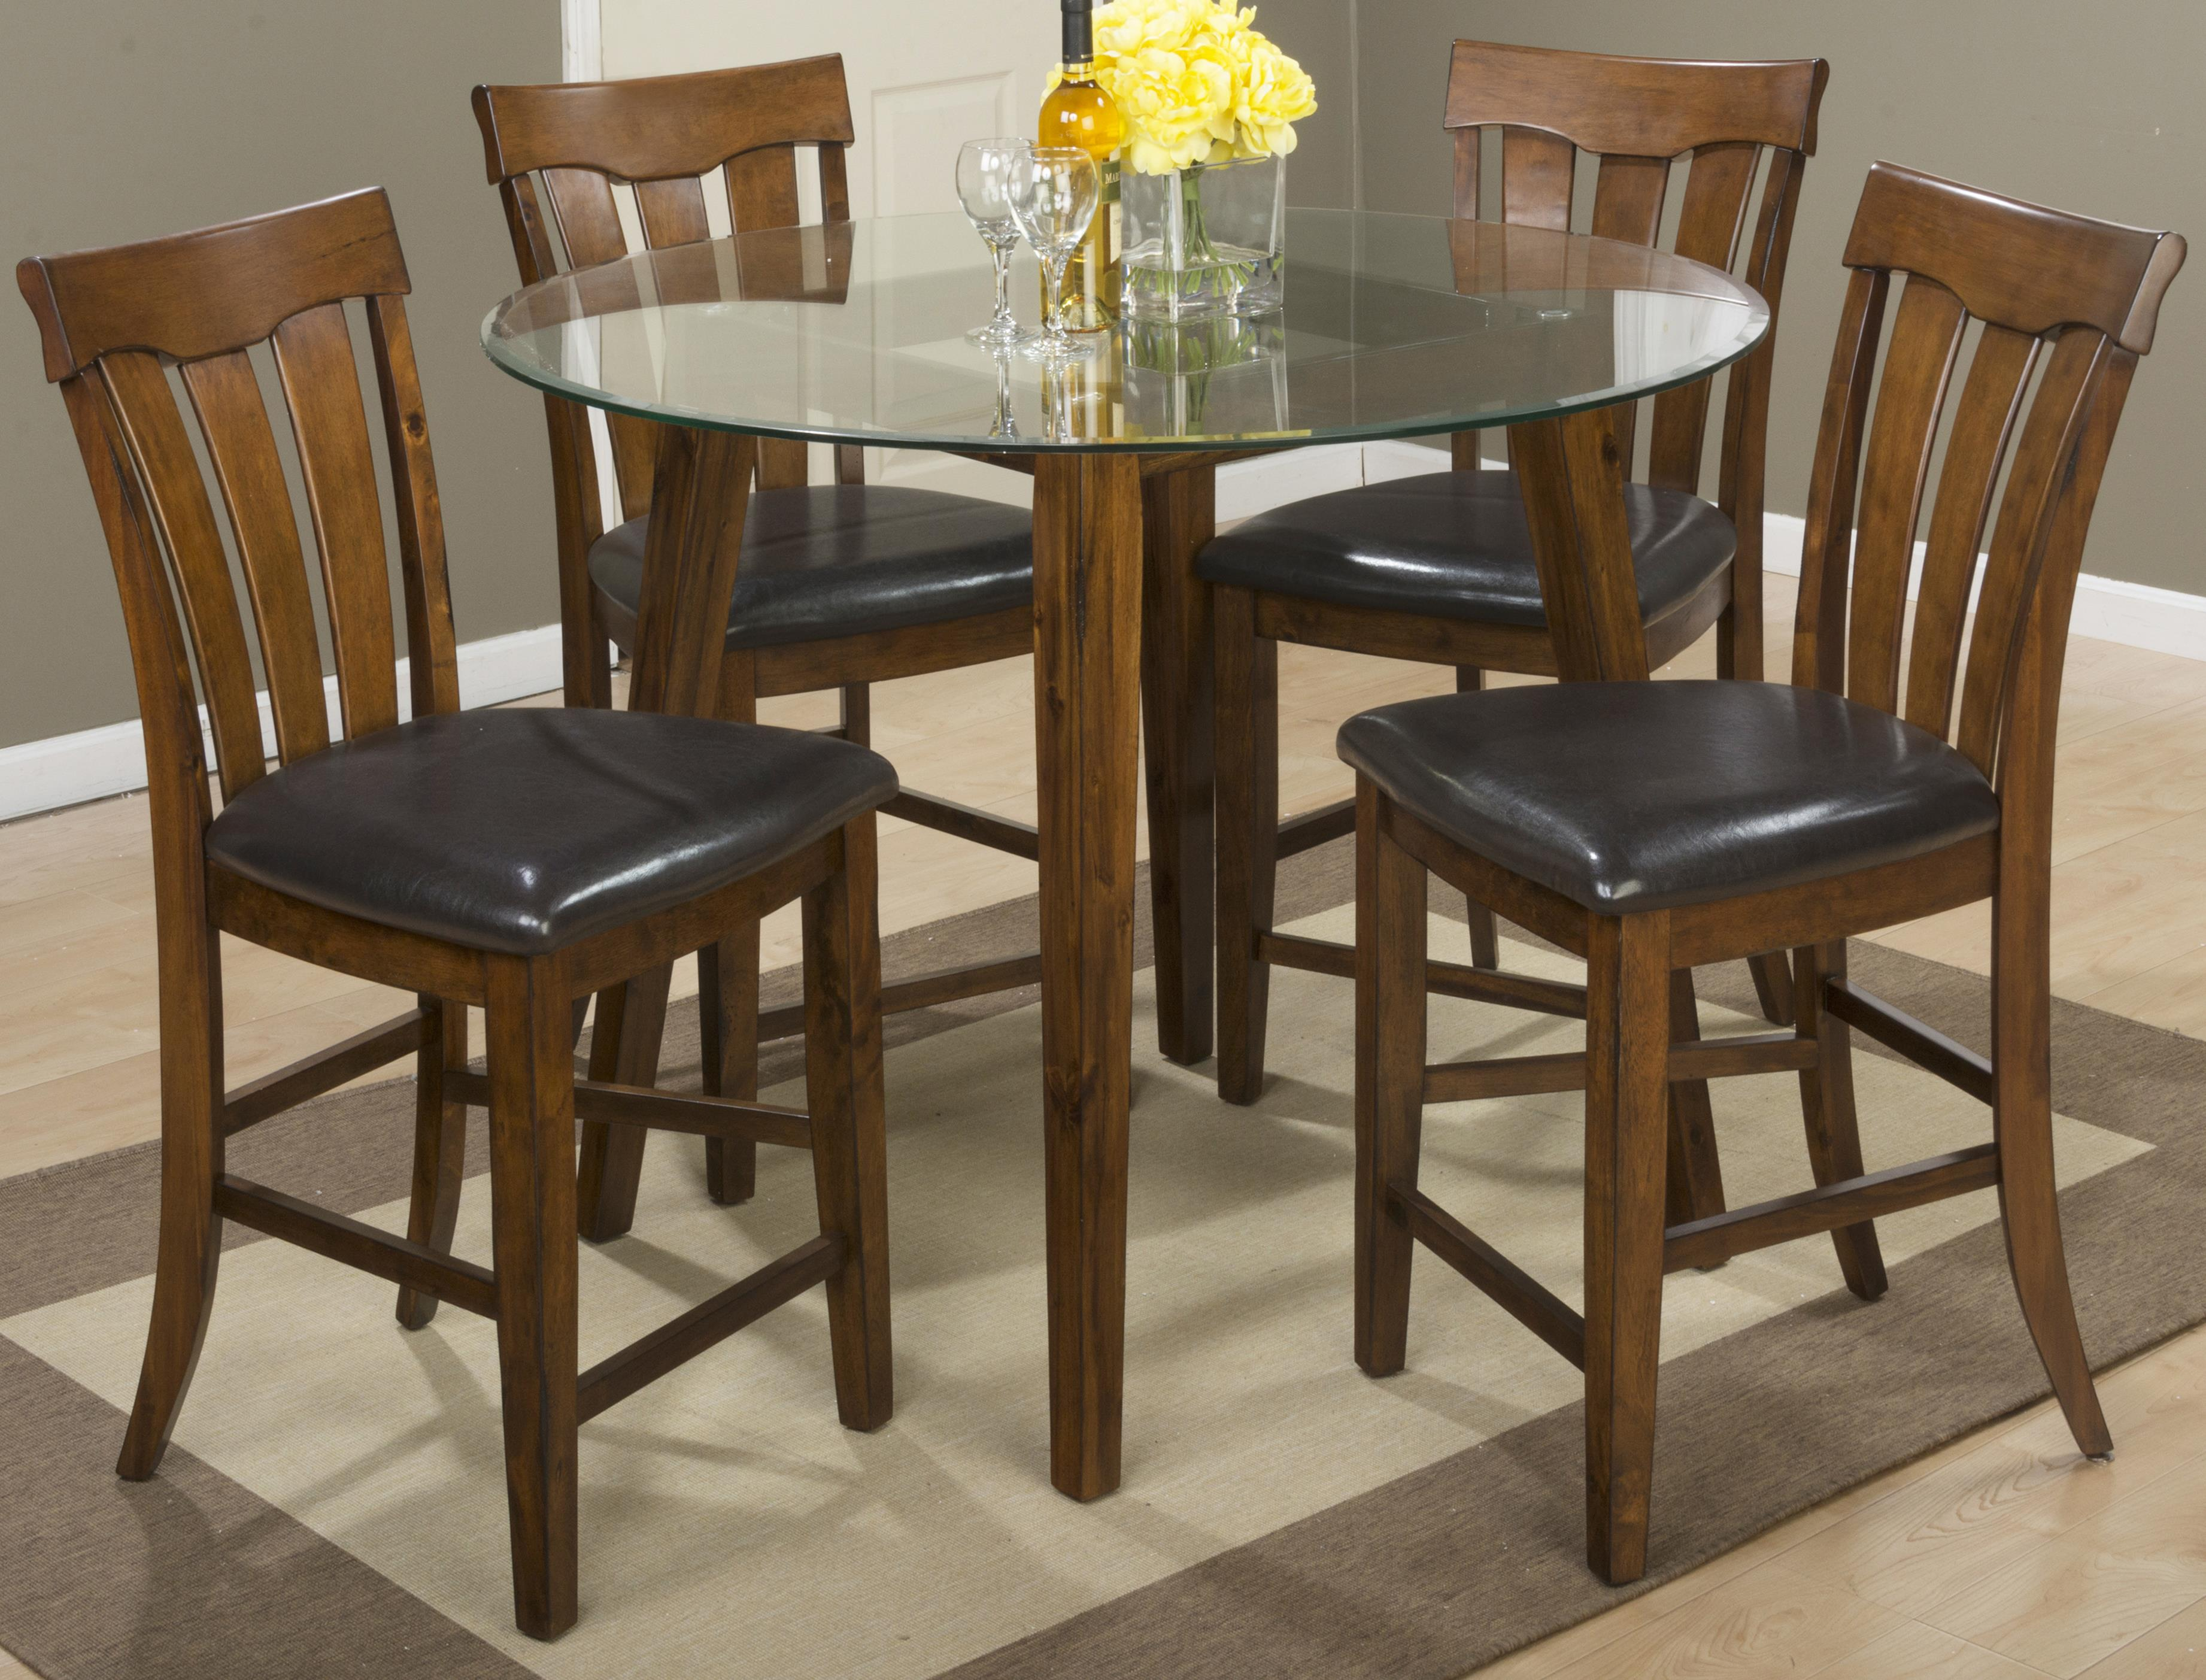 "Plantation 48"" Round Counter Height Table and Stool Set by Jofran at Jofran"